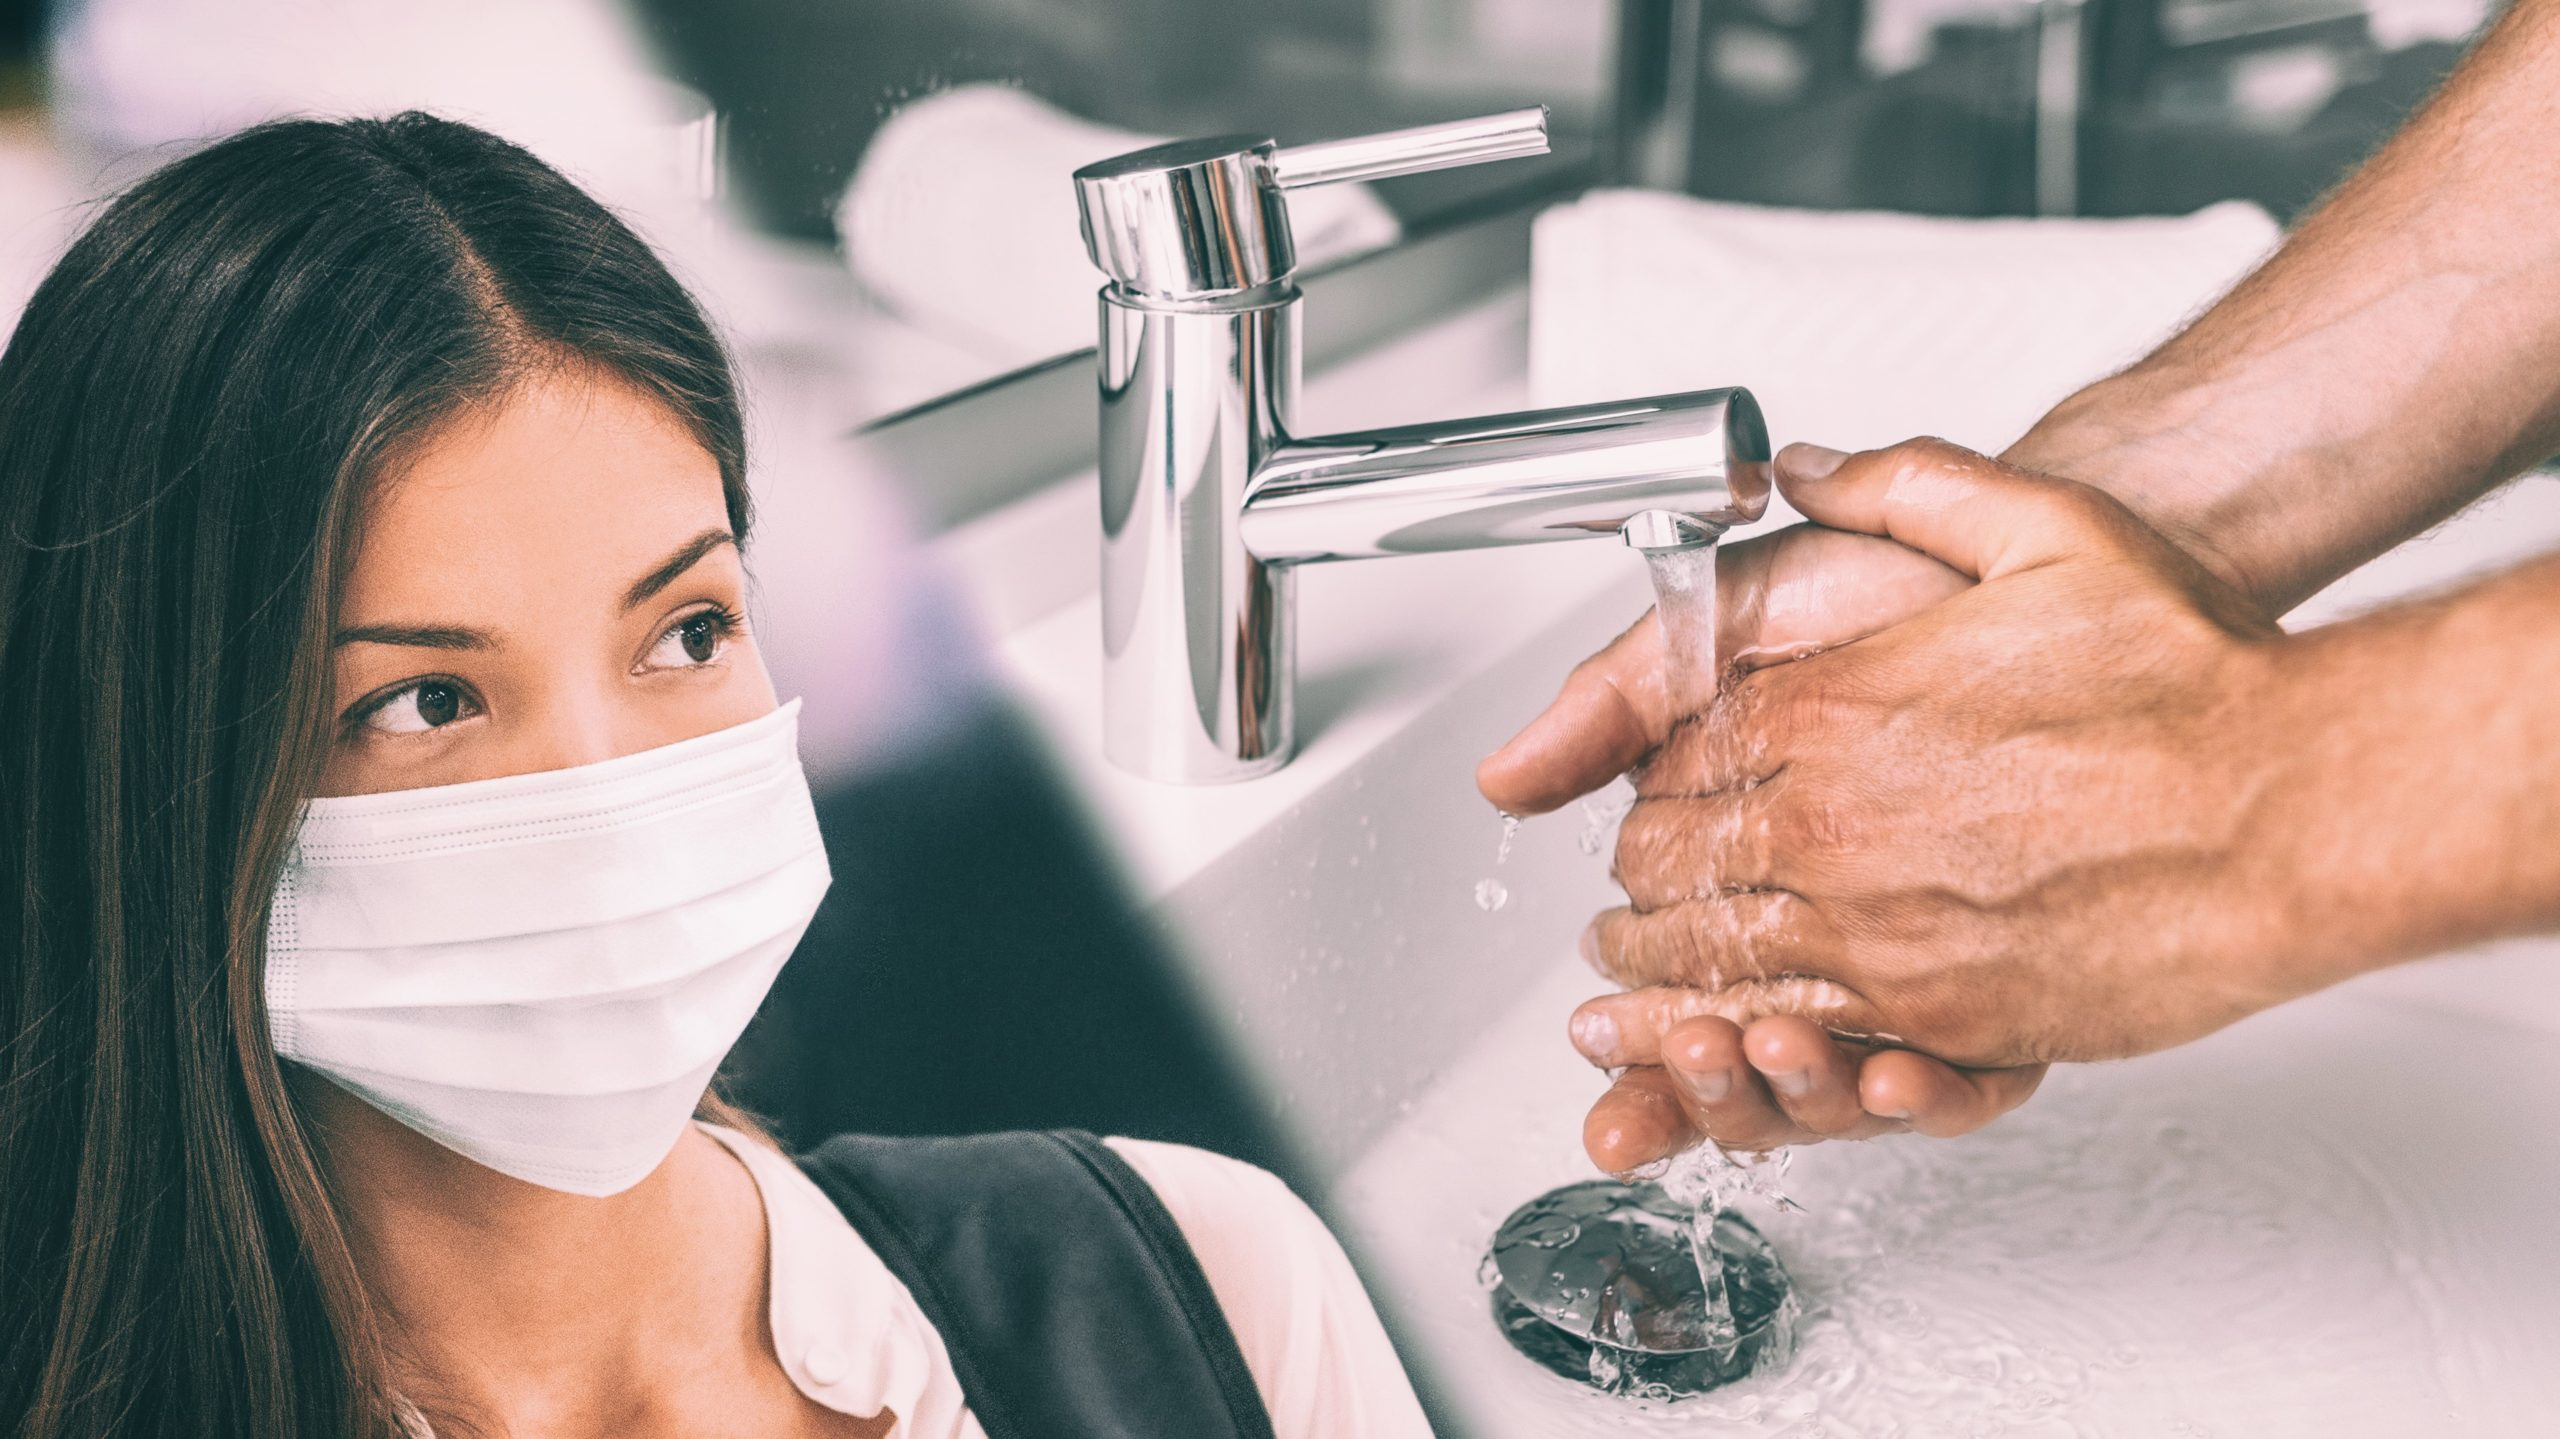 Tips to Improve Sanitation and Hygiene in the Office